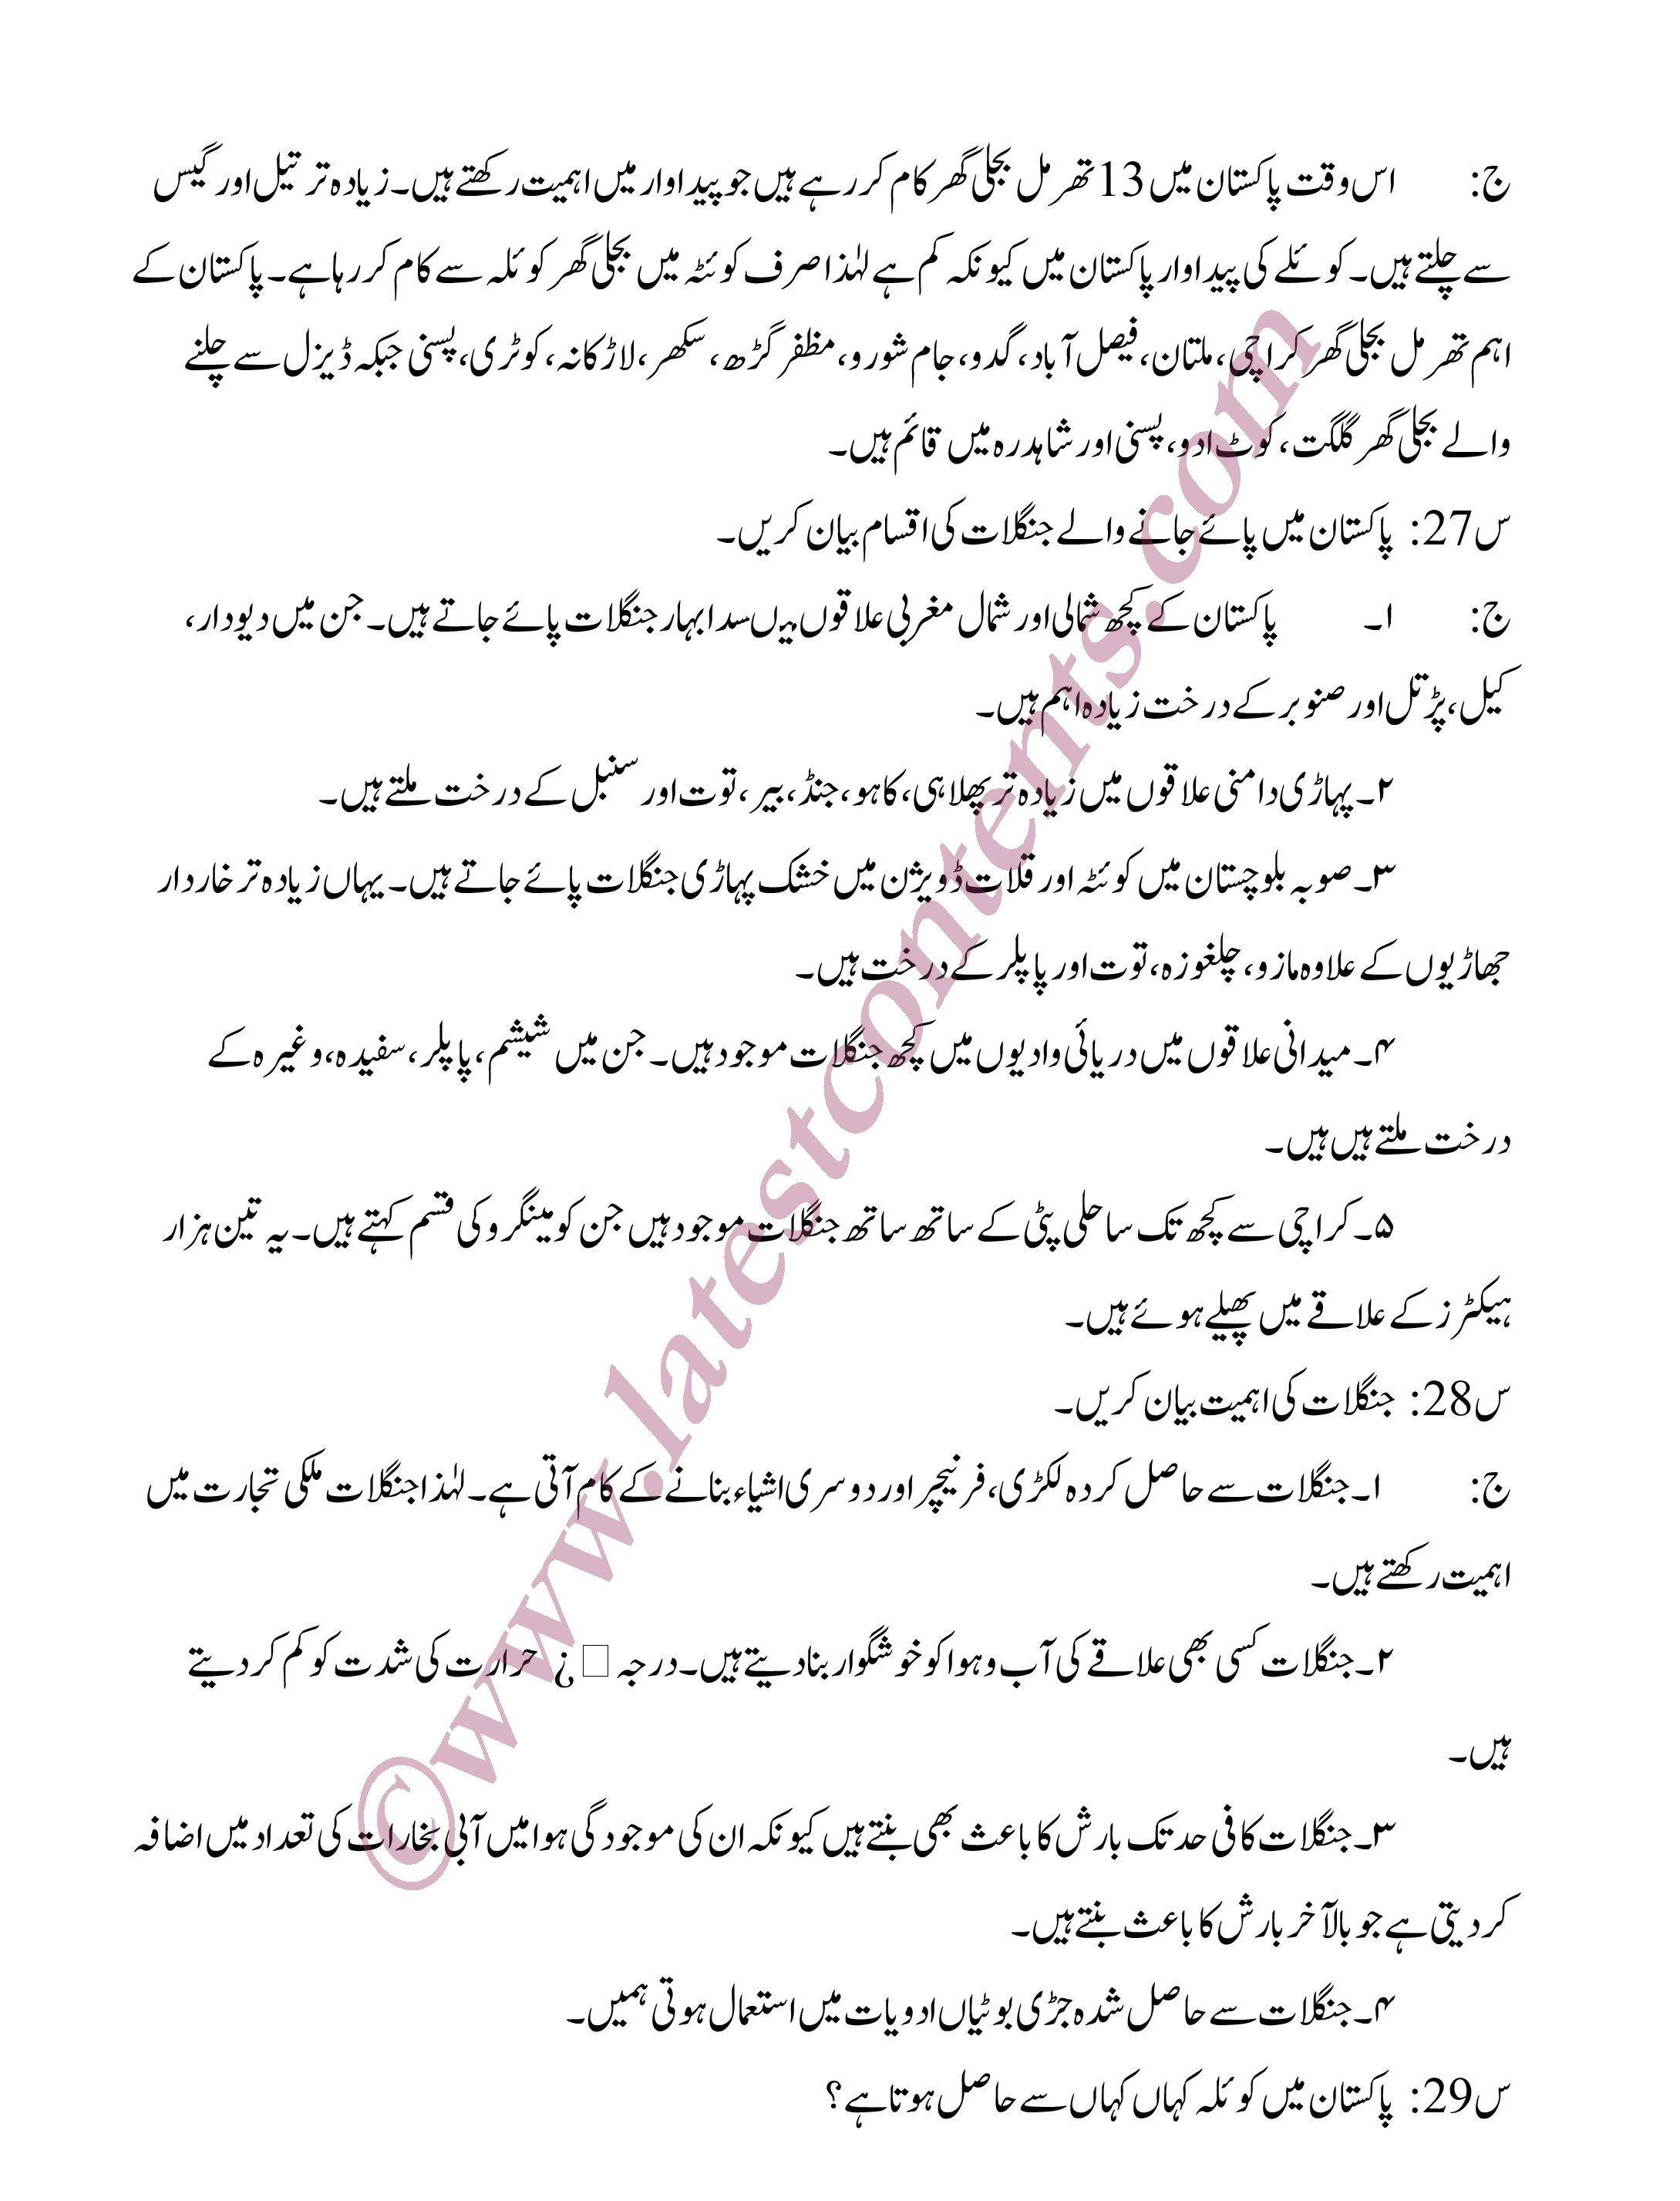 015 Issues To Write An Essay About Persuasive Social Media Essays On Topics Easiest Topic Pak Studies Short Questions Notes In Ur Funny Good Argumentative Interesting Paper Easy Awesome For High School Full